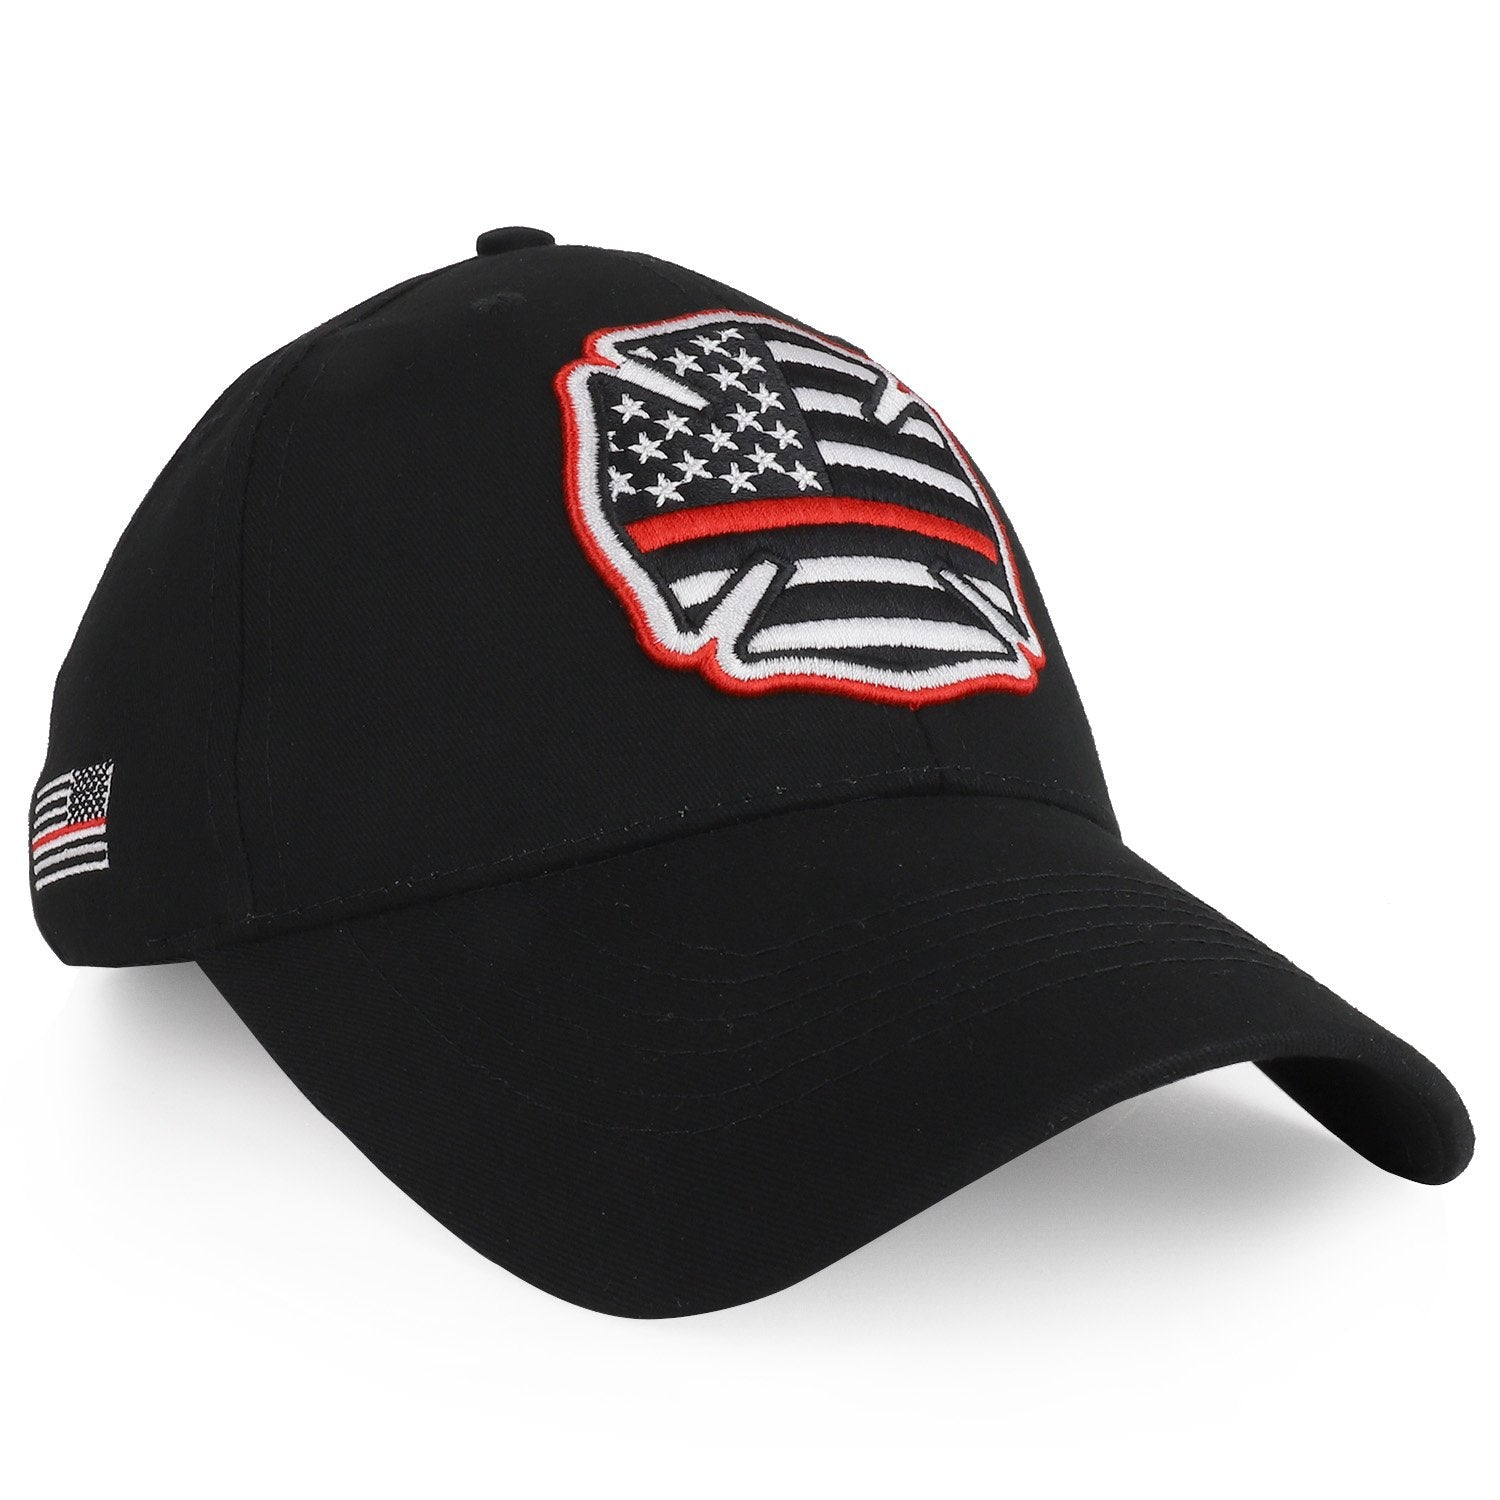 04e5f9df1db Armycrew US Thin Red Line Flag Embroidered Structured Baseball Cap -  Armycrew.com